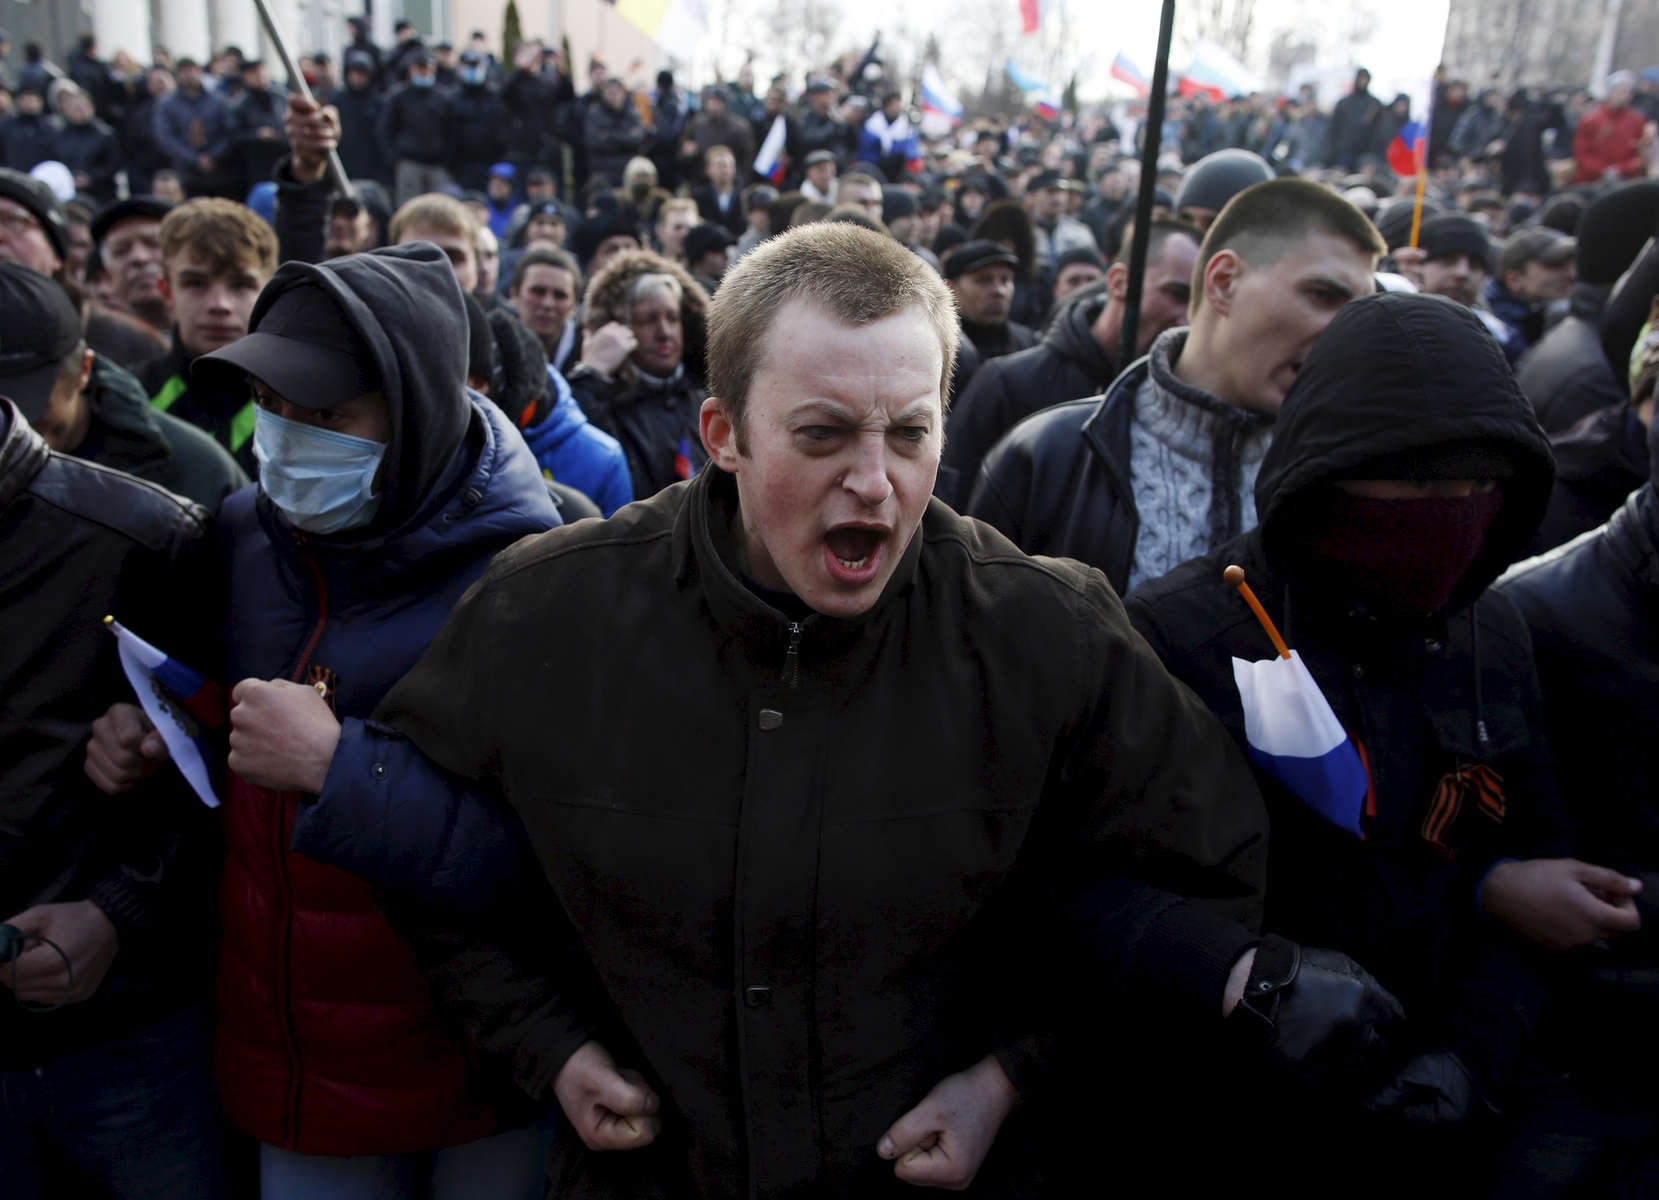 Donetsk, Ukraine-- 03/16/2014-- Pro-Russian protesters chant outside of the Donetsk Prosecutors Building before storming into the building during a protest in Donetsk, Ukraine March 15, 2014.